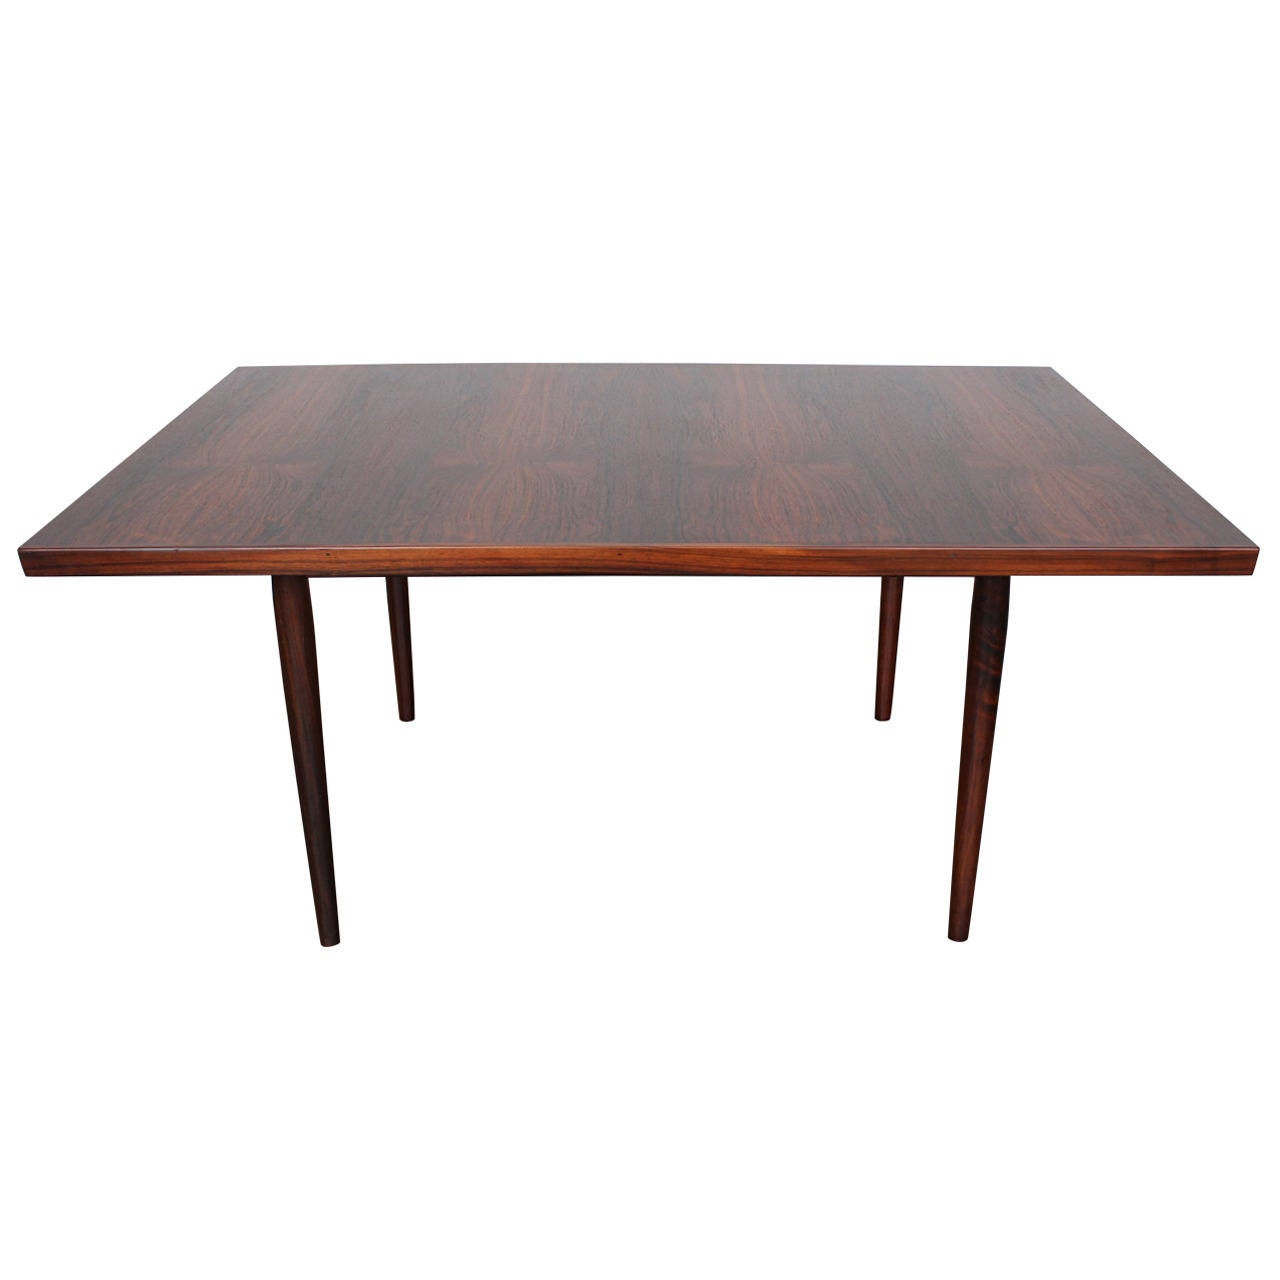 Mid century modern danish rosewood dining table for sale for Mid century modern dining table